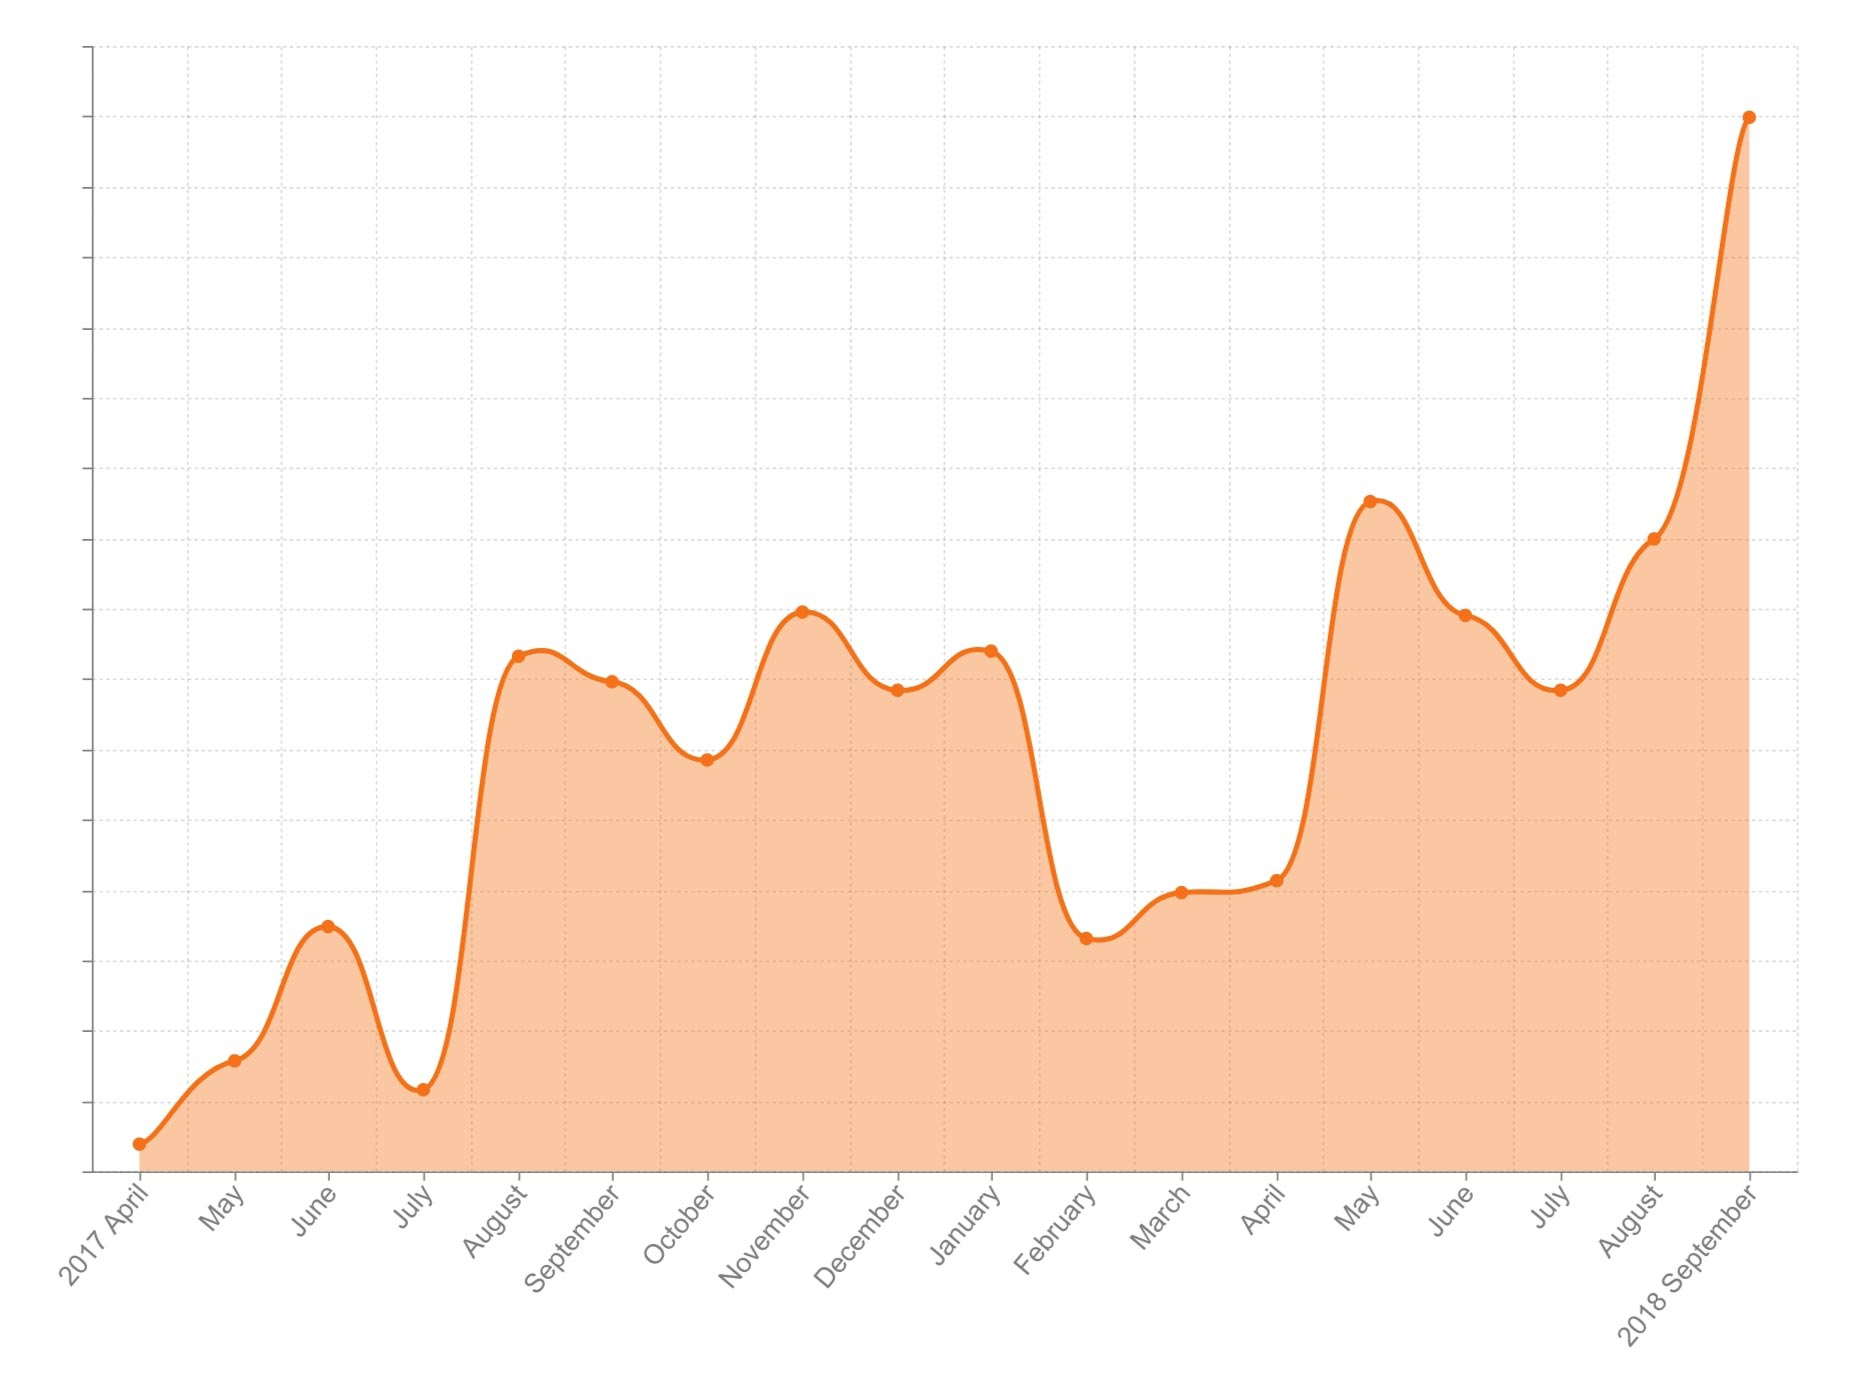 orange case study revenue graph